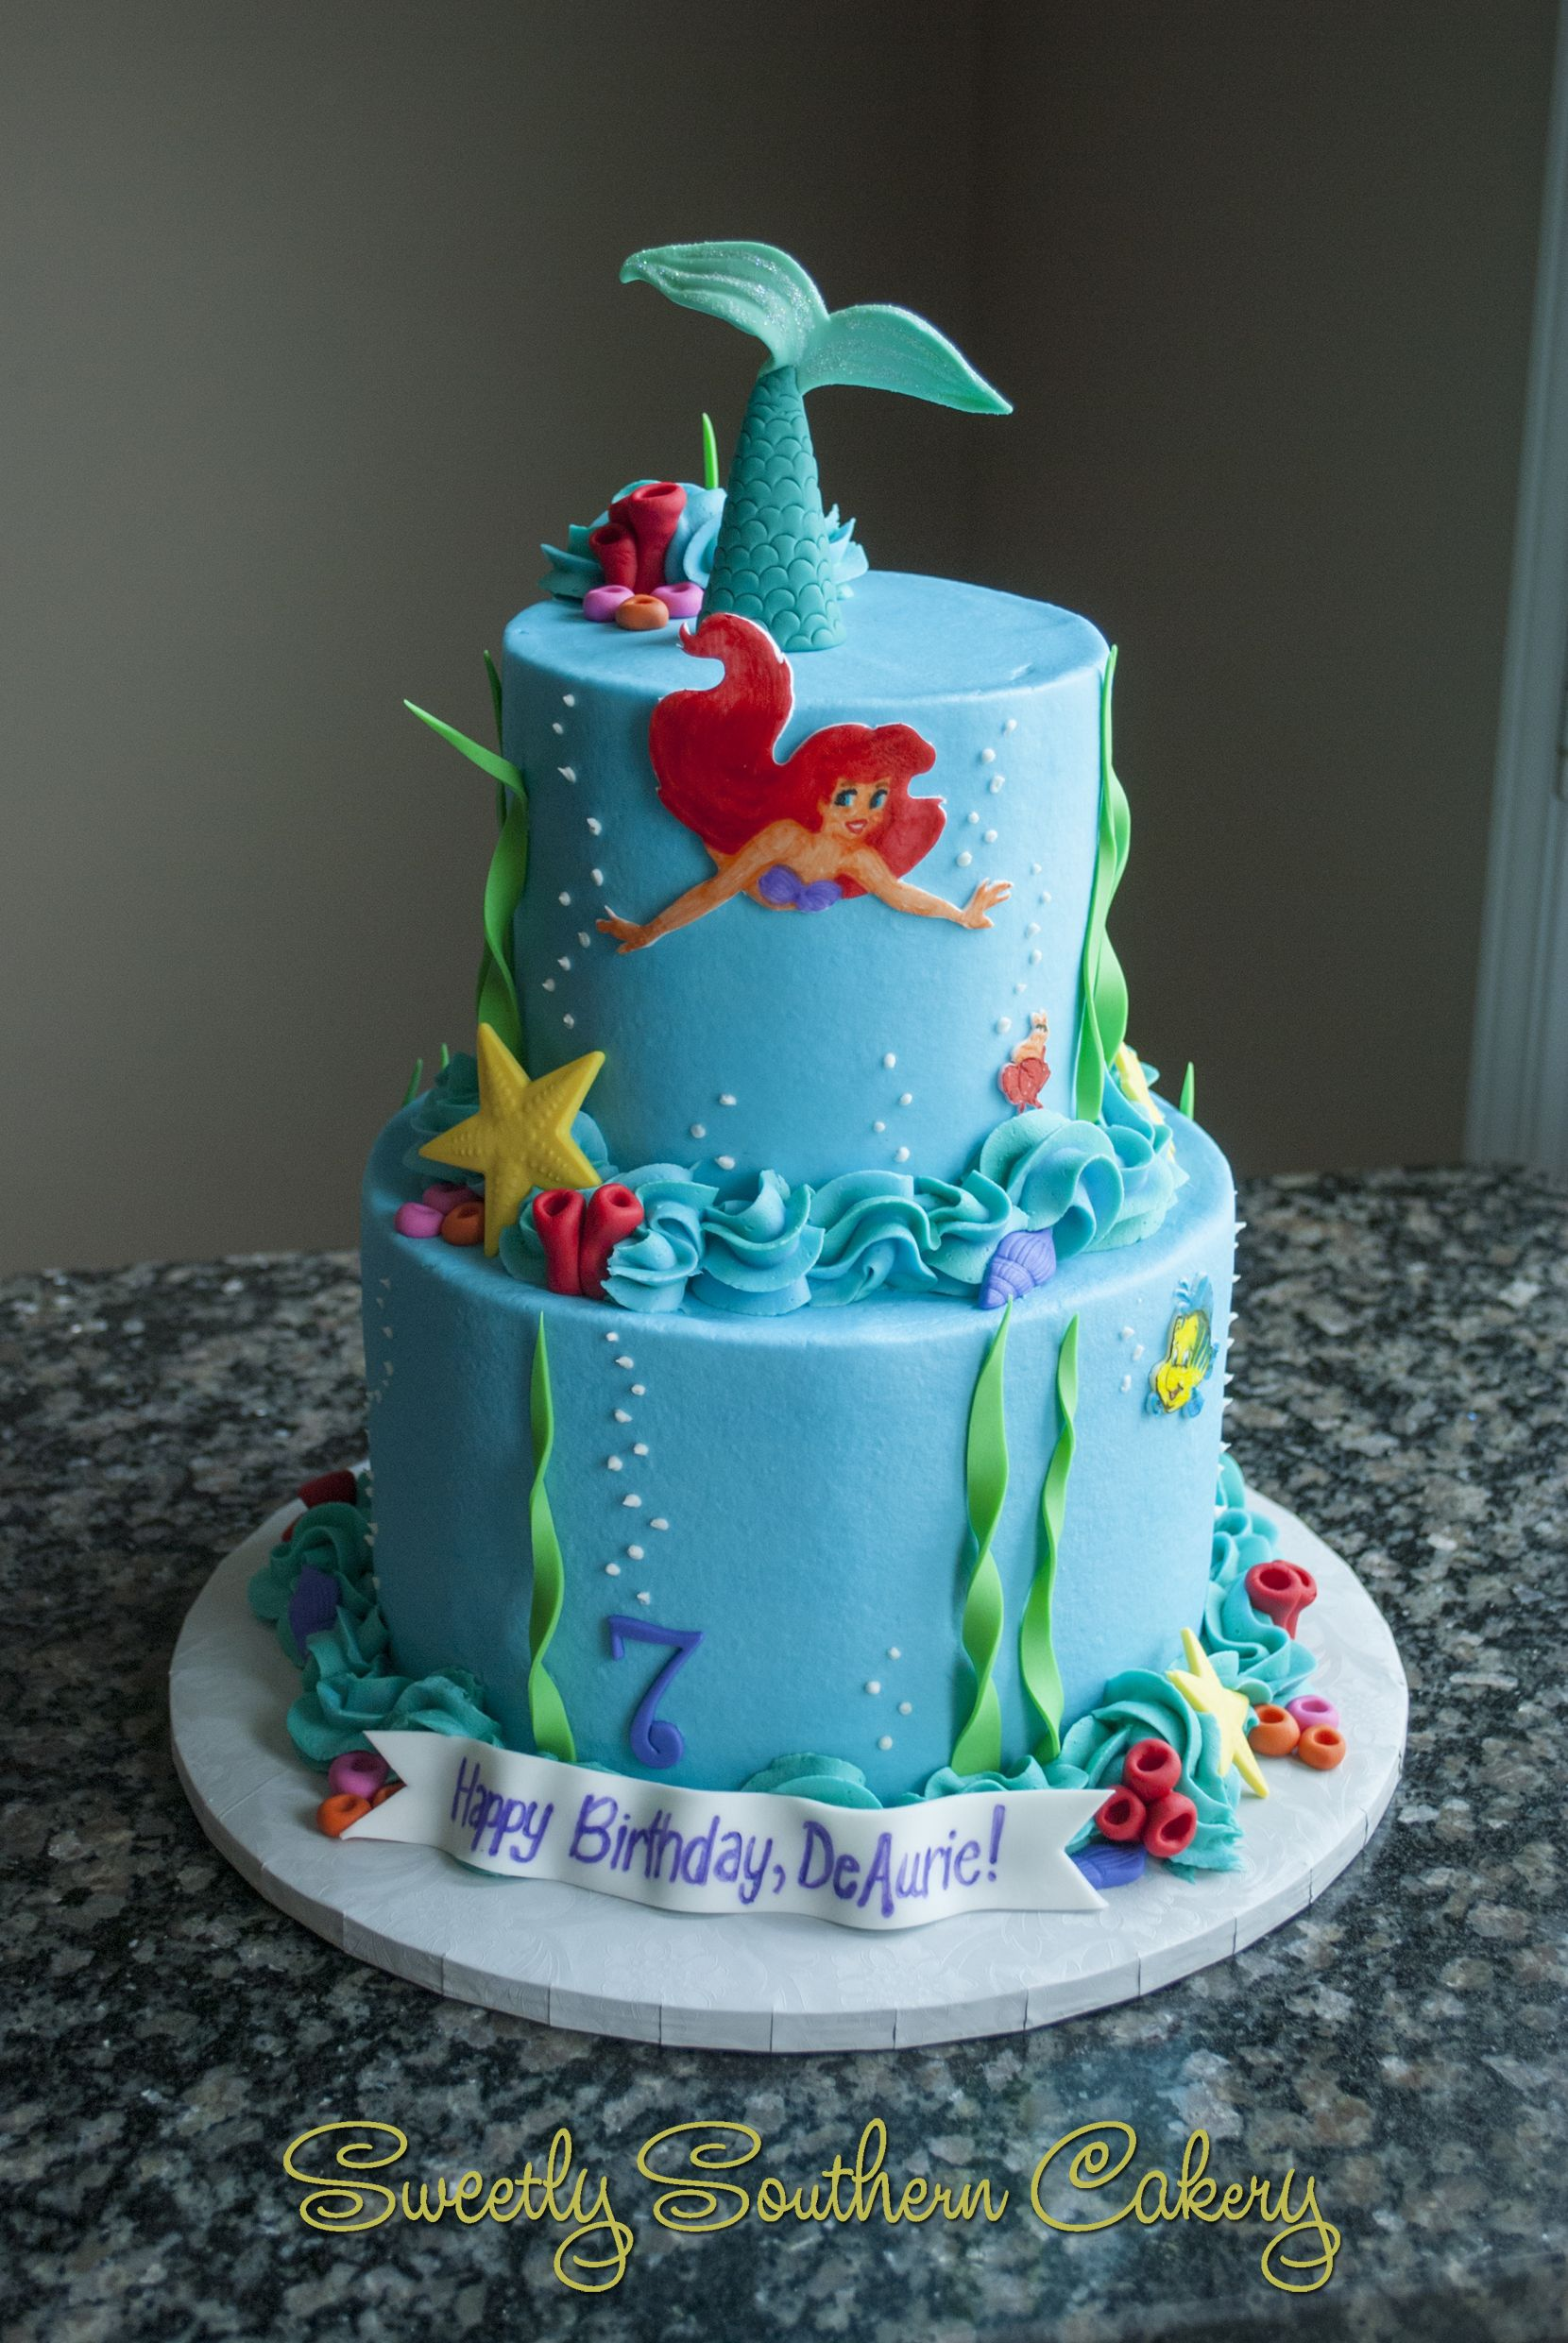 How To Make A Rainbow Birthday Cake Mermaid Birthday Cakes